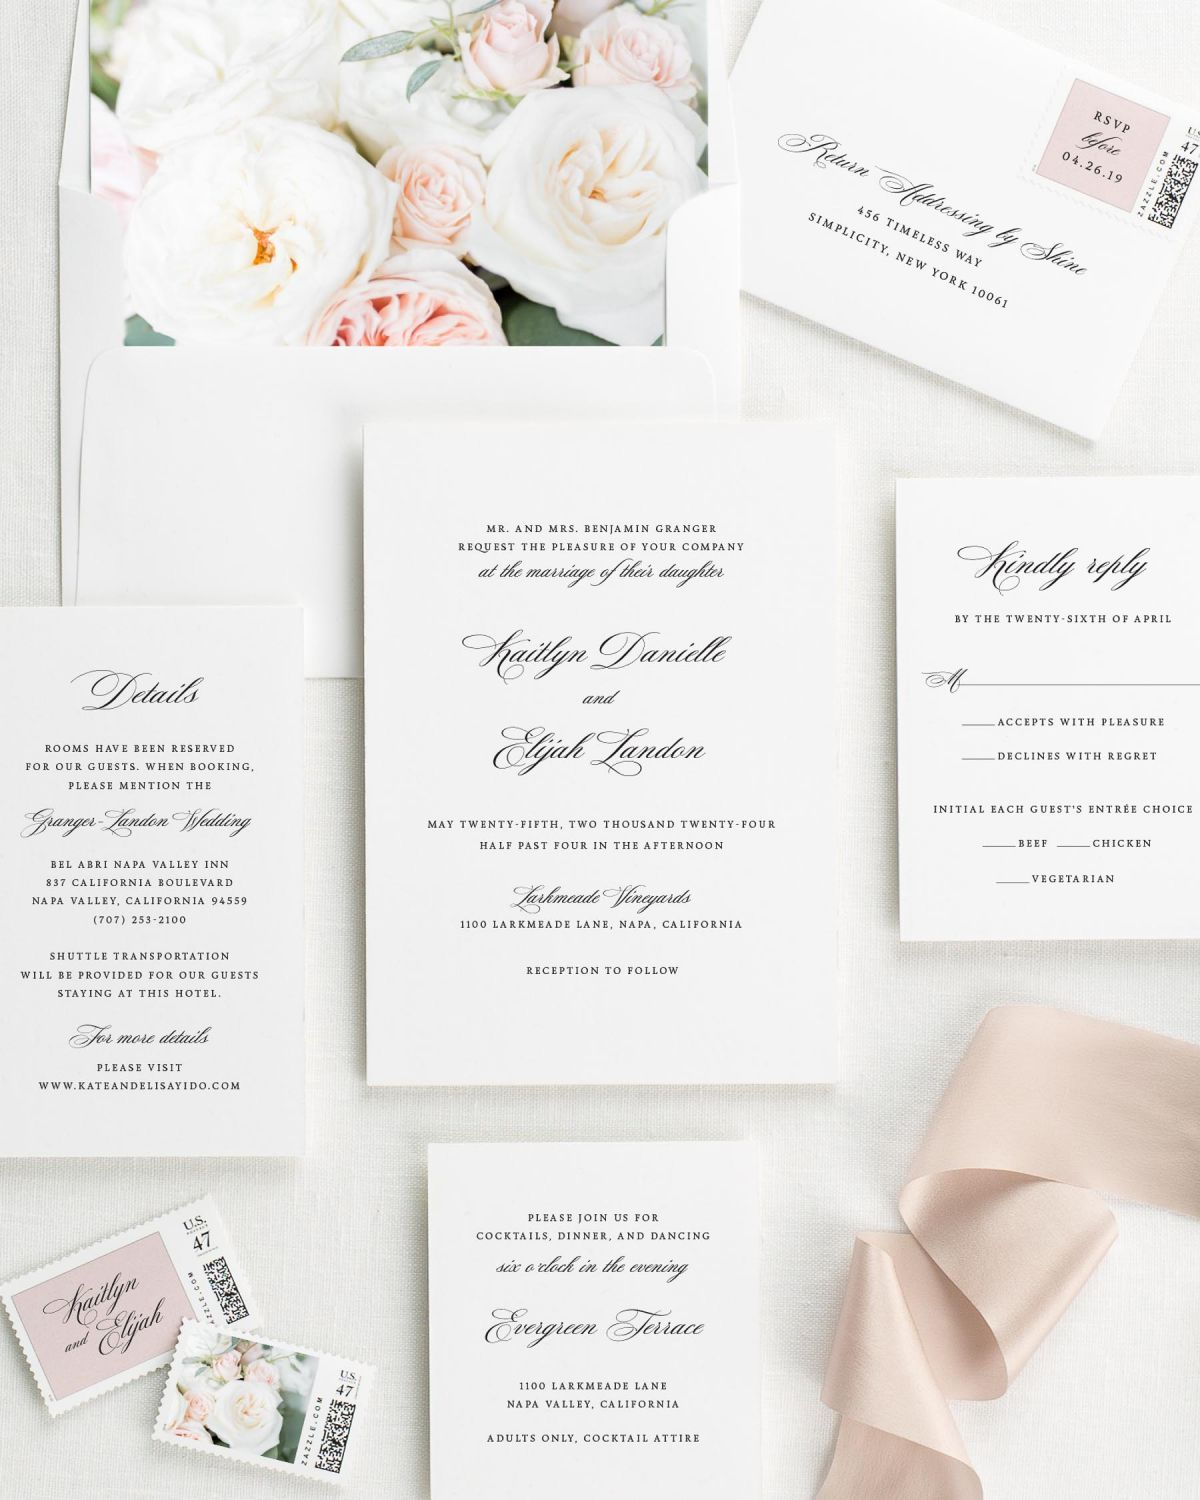 Kaitlyn floral wedding invitations floral wedding invitations by shine floral wedding invitations stopboris